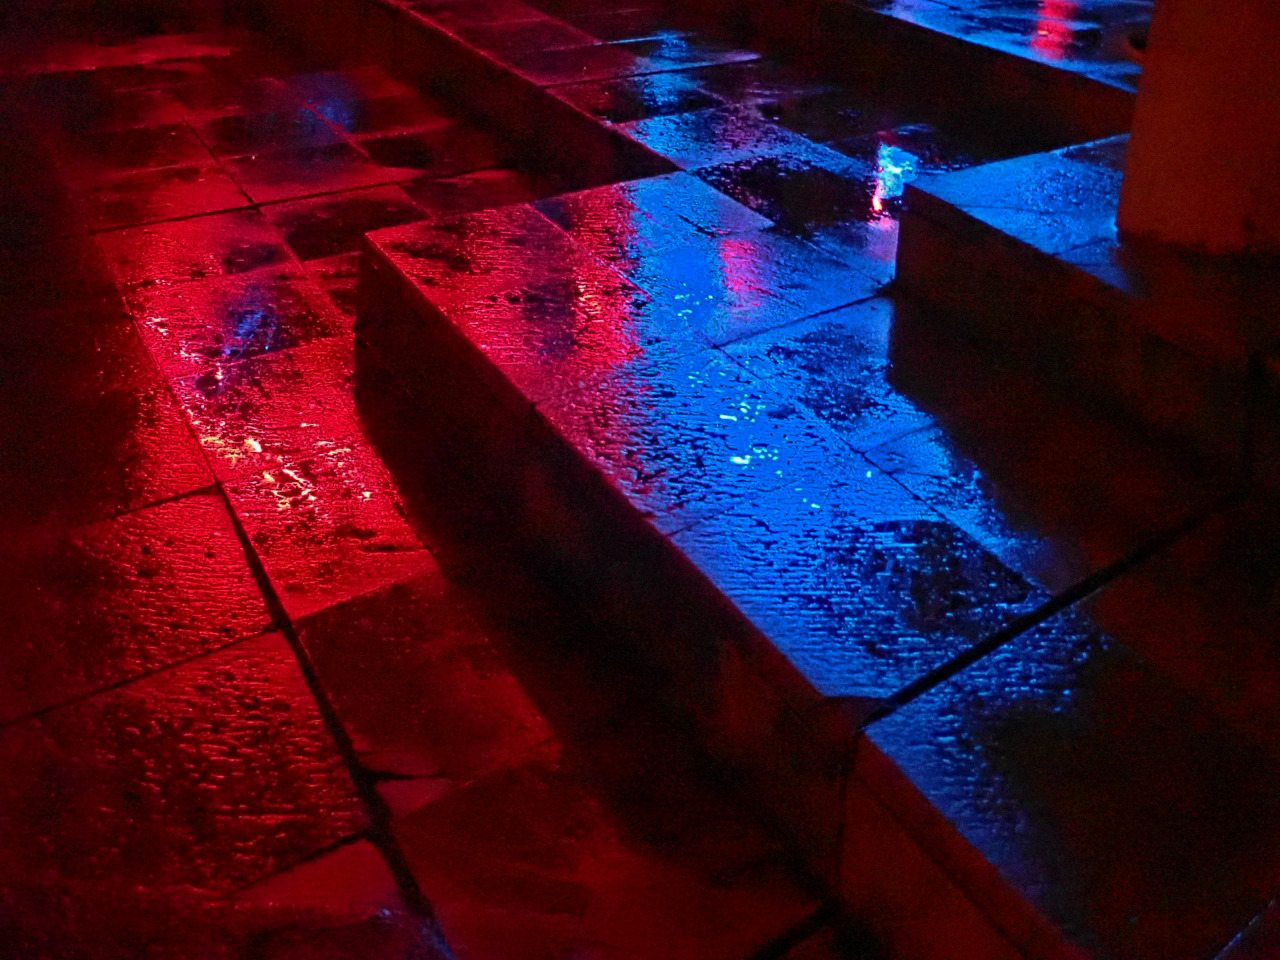 OLDTHER. 19 #photography#neon#reflection#blue#red#water#stone#mywork